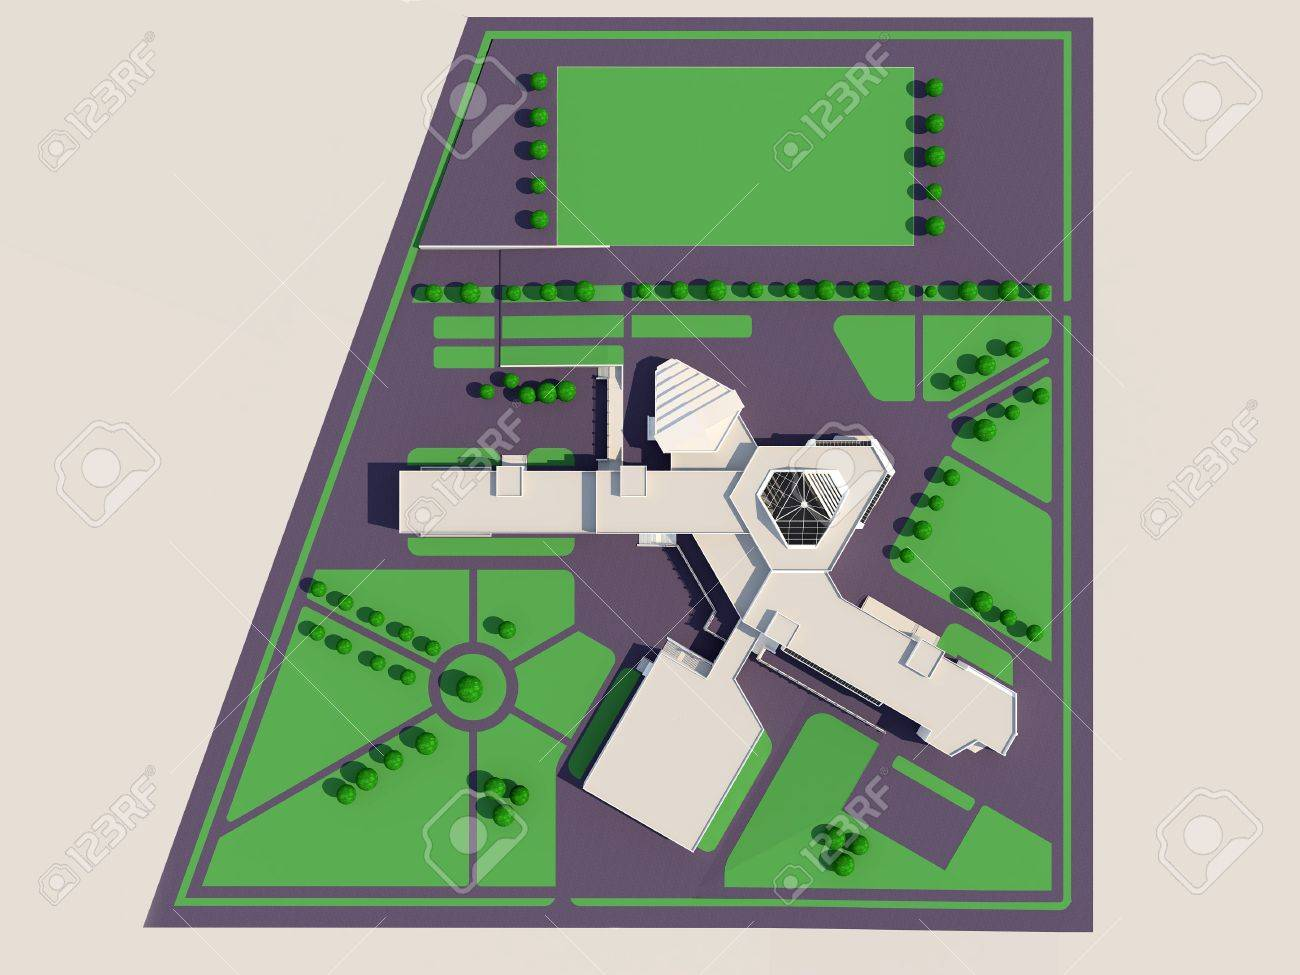 Photo architecture 3d master plan of the school building jpg 1300x975 green school building drawings